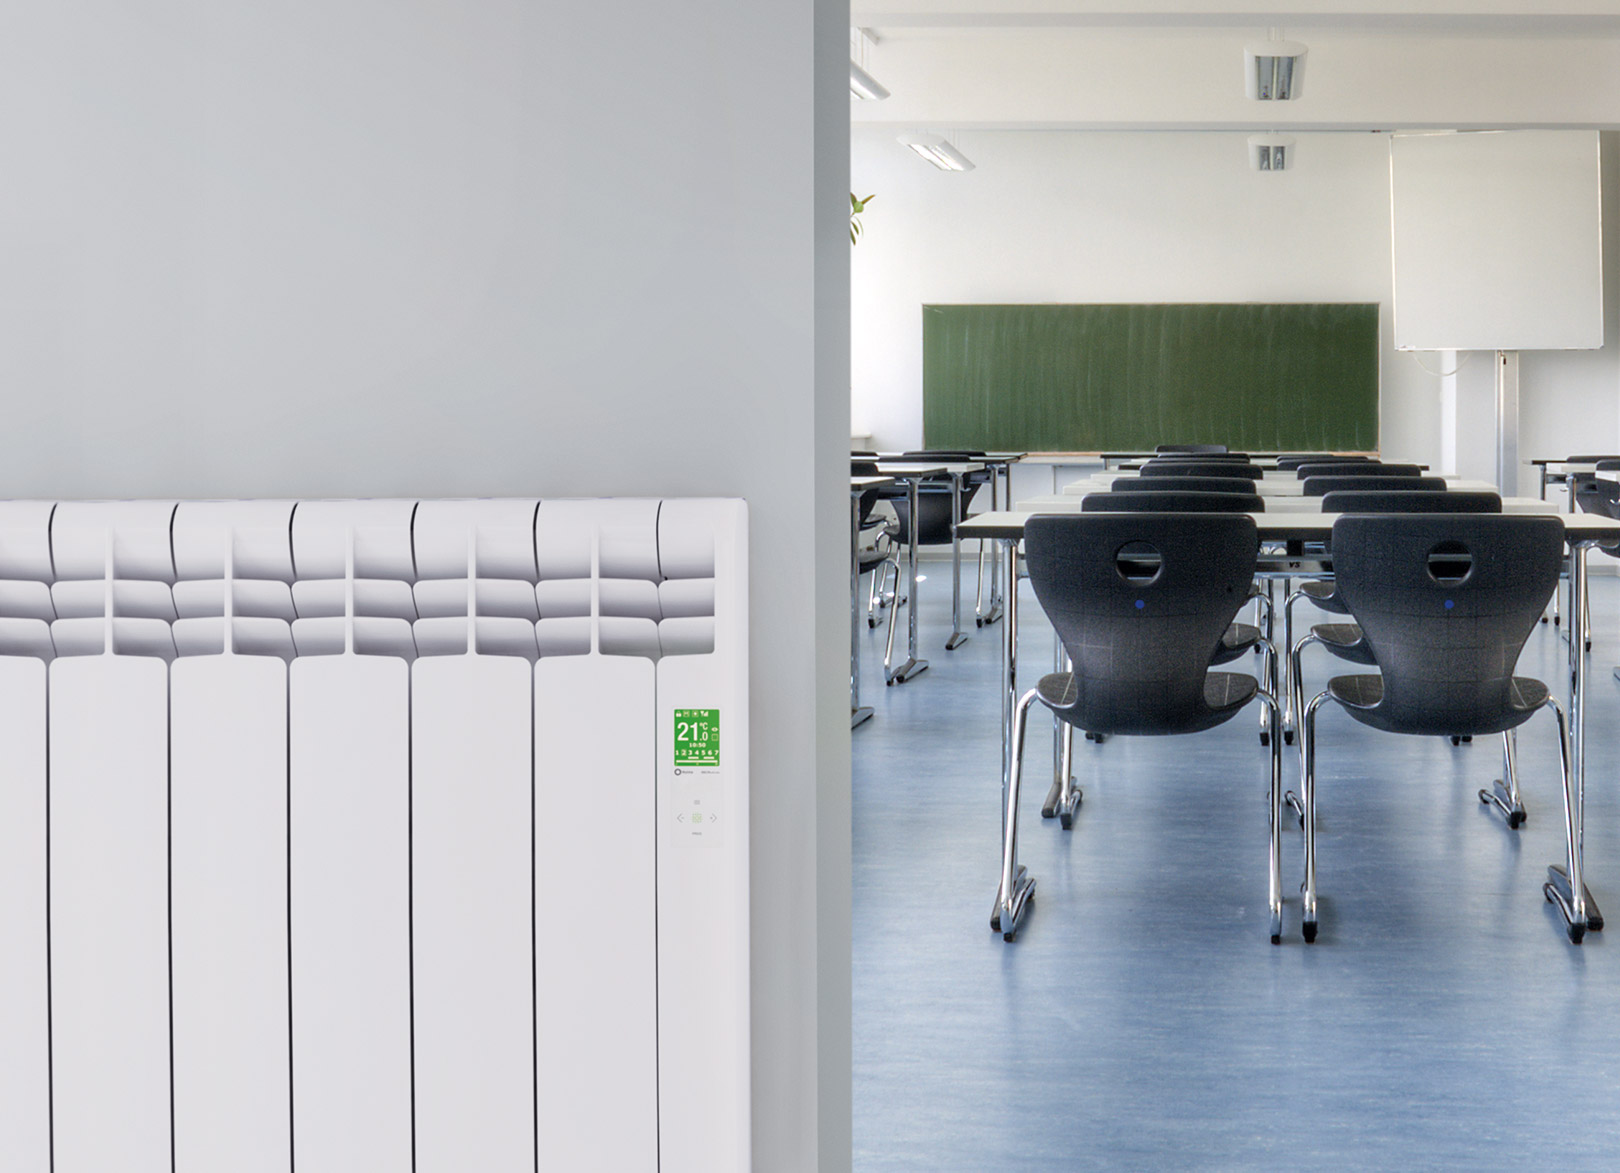 Rointe D Series WiFi electric radiator in school classroom